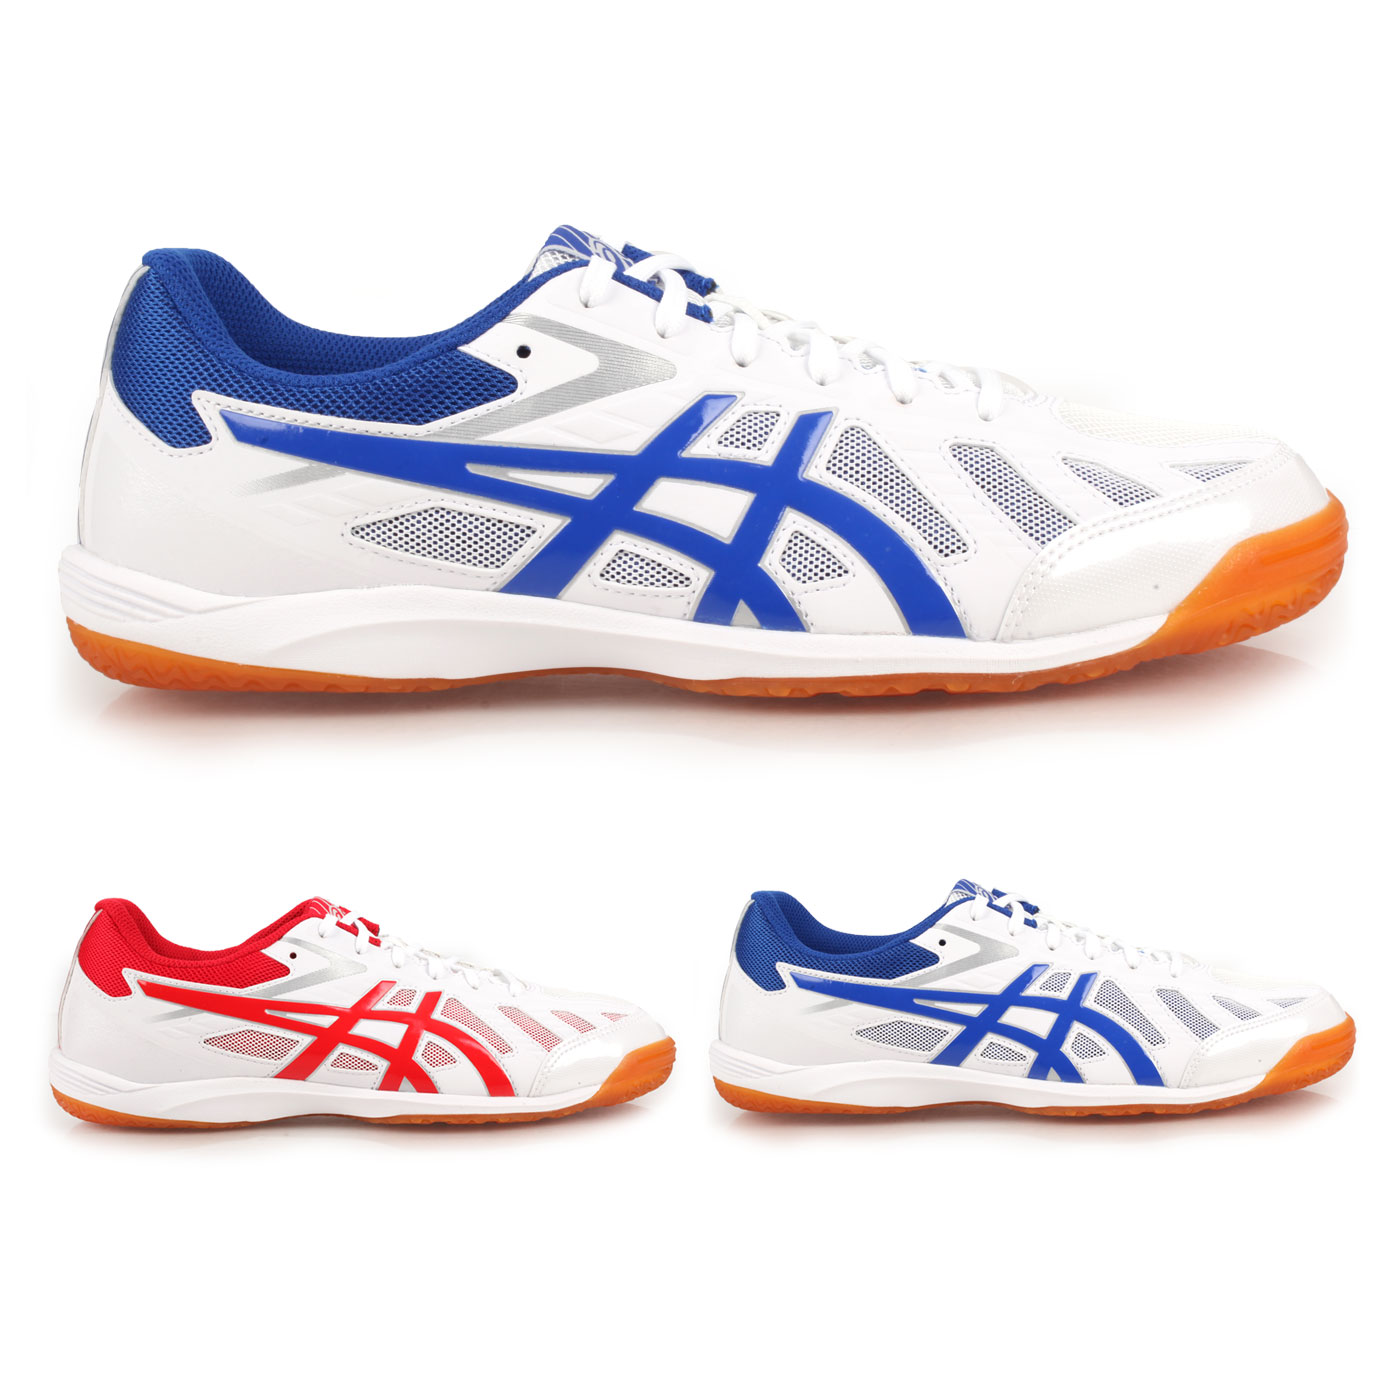 ASICS 桌球鞋  @ATTACK HYPERBEAT SP 3@1073A004-101